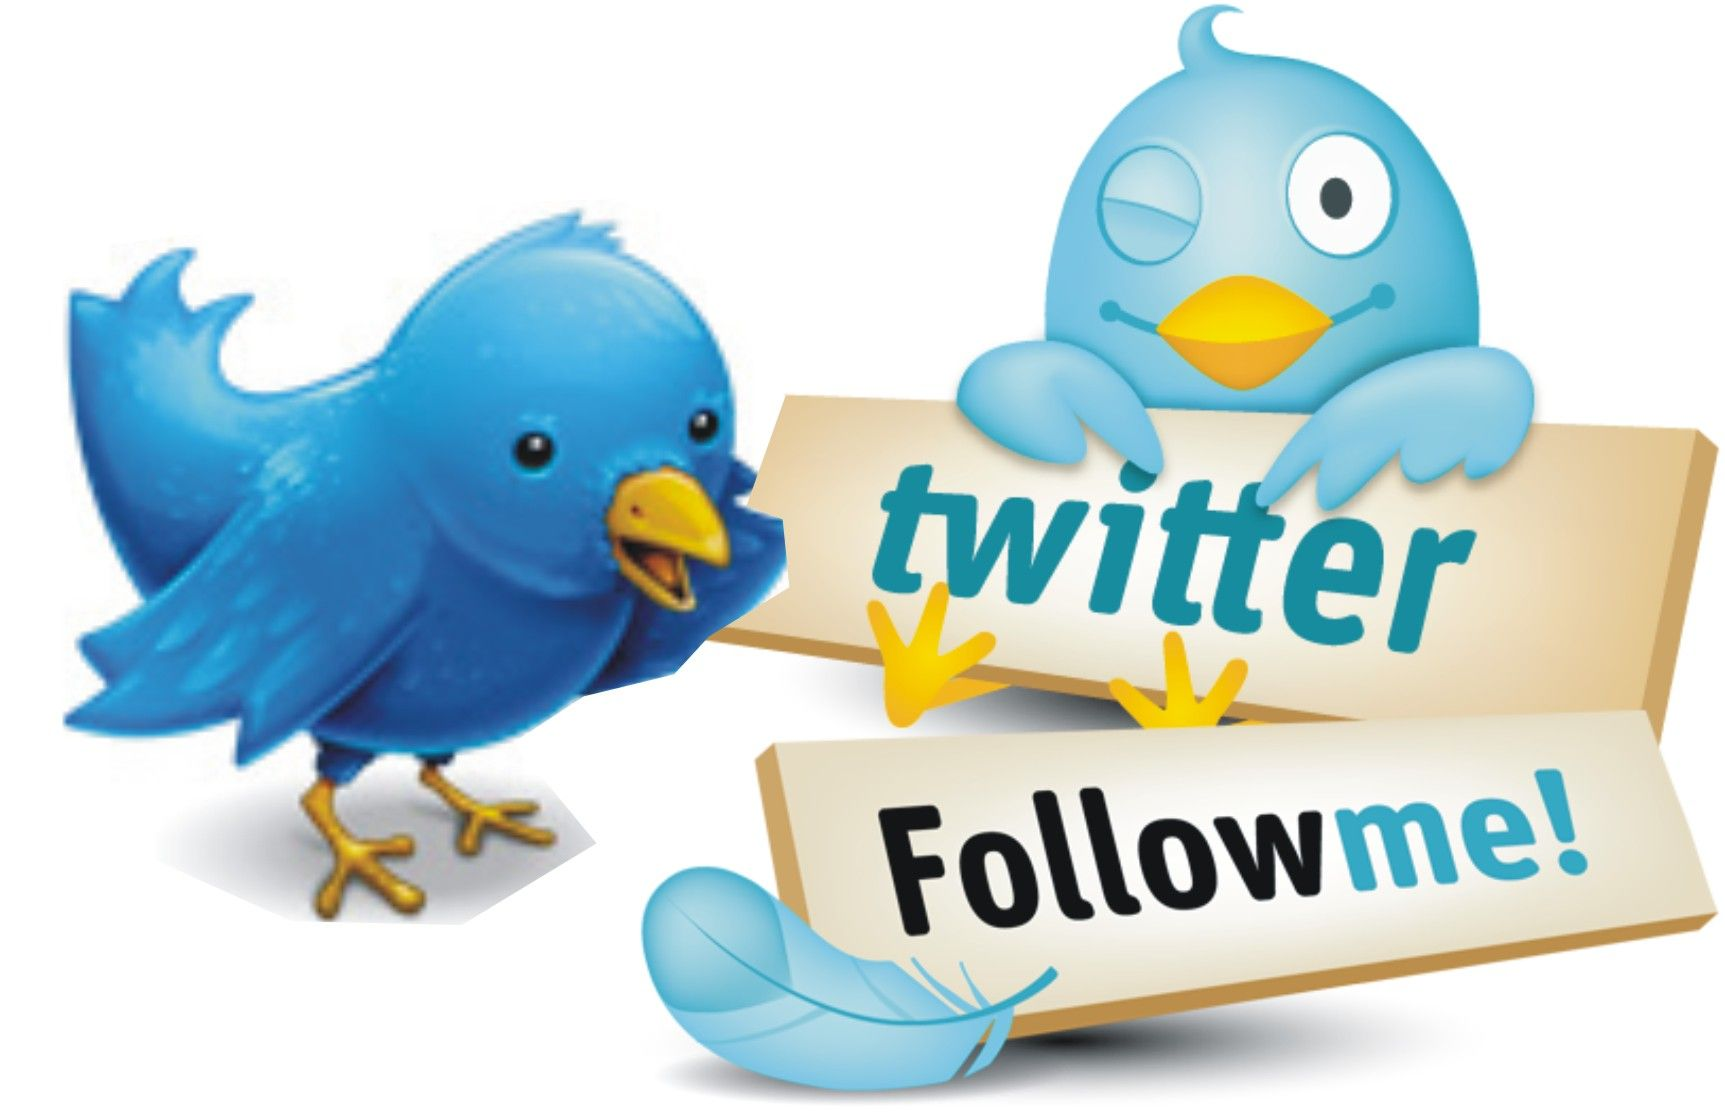 zebraexpress: give you 1,000 twitter followers for $5, on fiverr.com